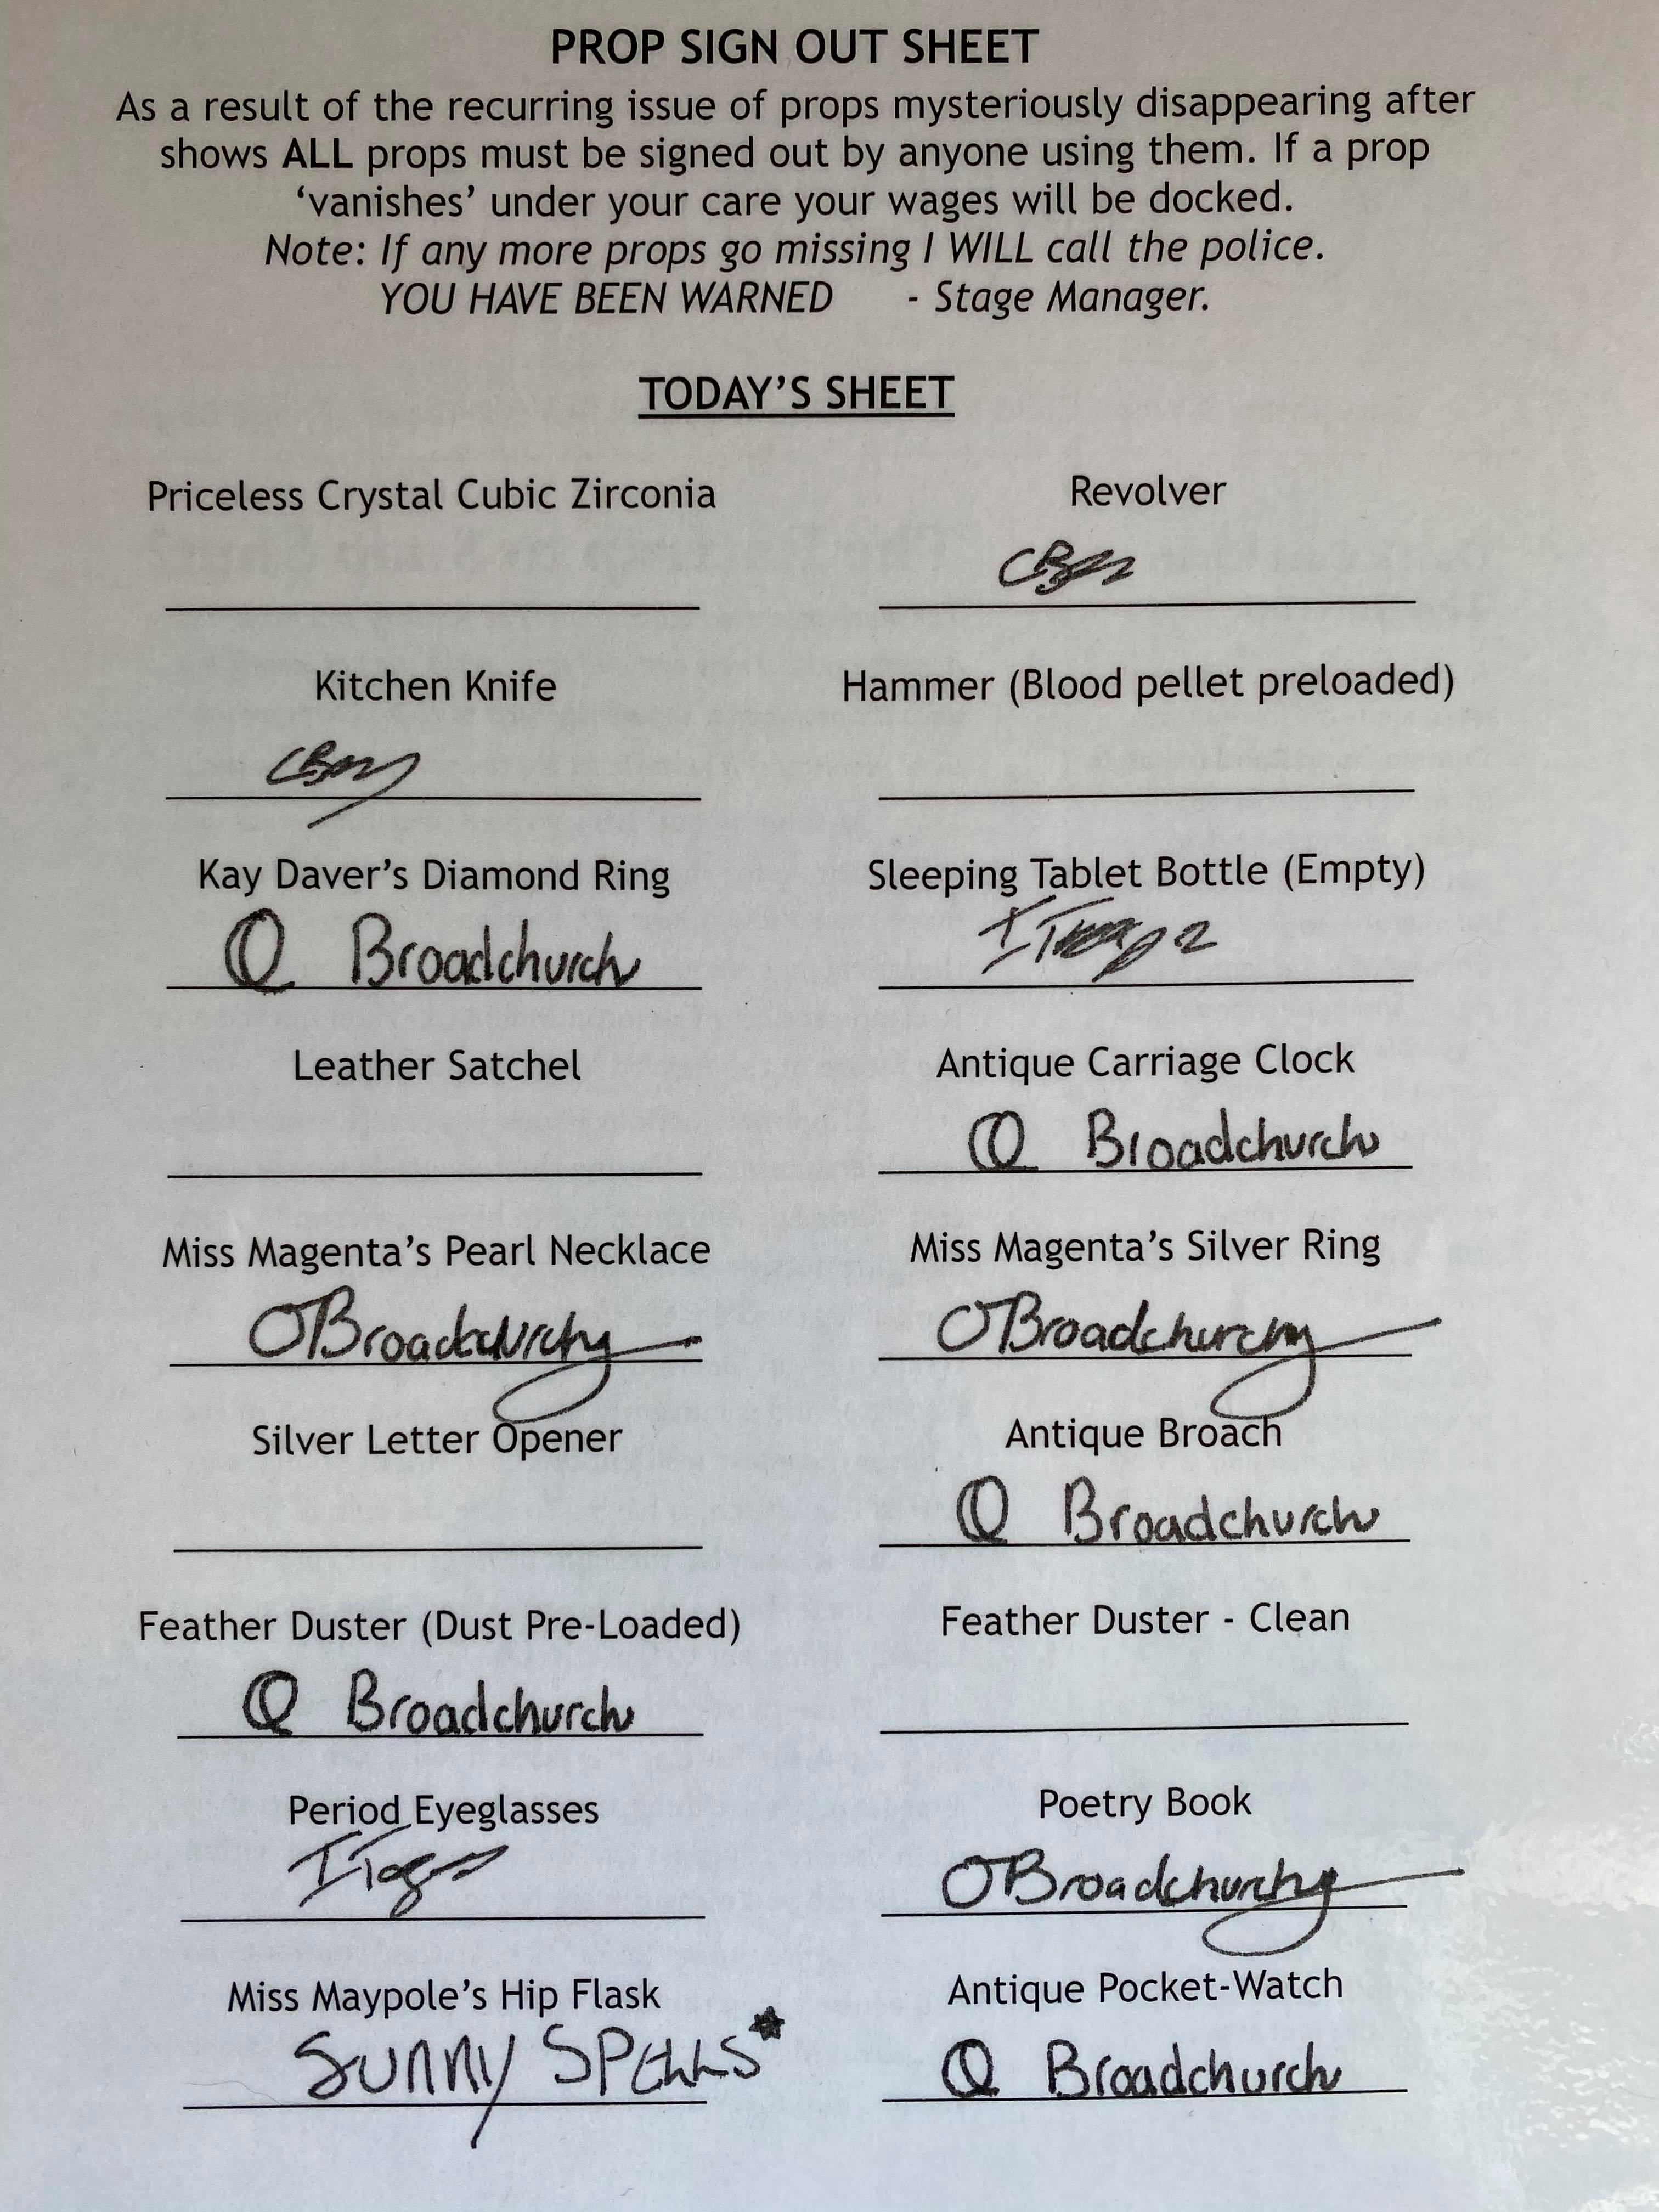 Prop Sign Out Sheet